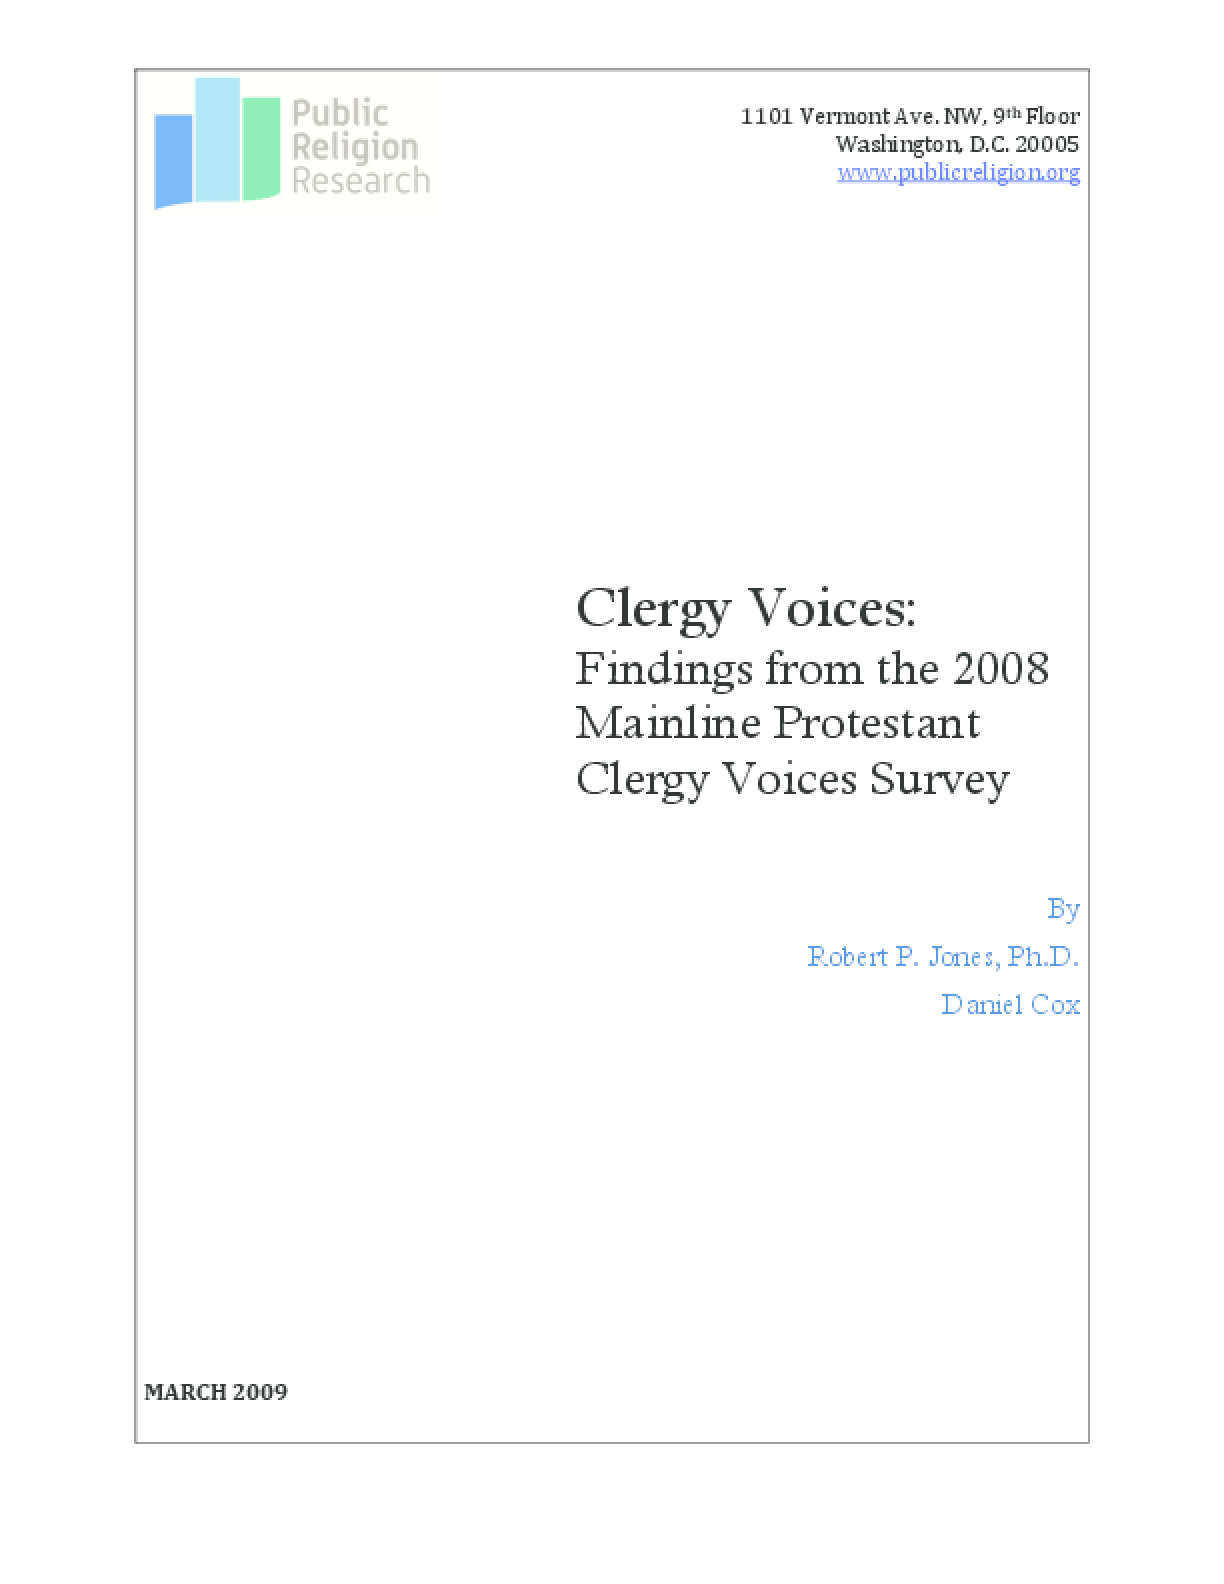 Clergy Voices: Findings From the 2008 Mainline Protestant Clergy Voices Survey